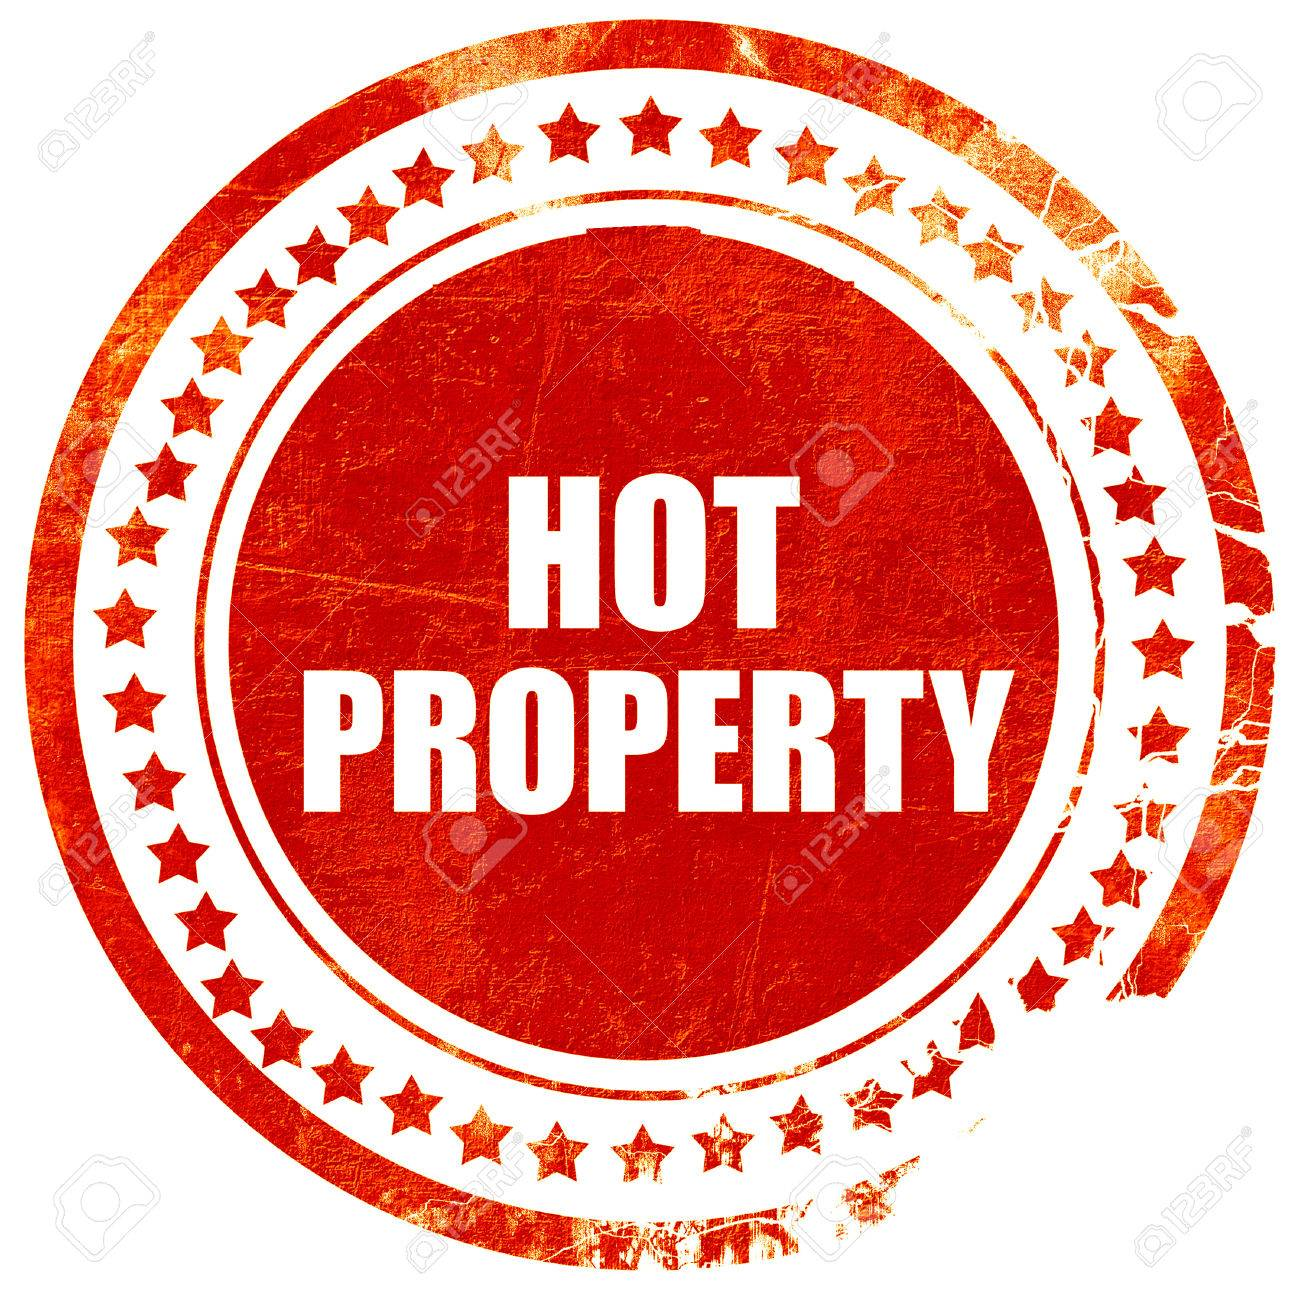 Here are the 5 Hot Properties in Noida that are worth investing in.